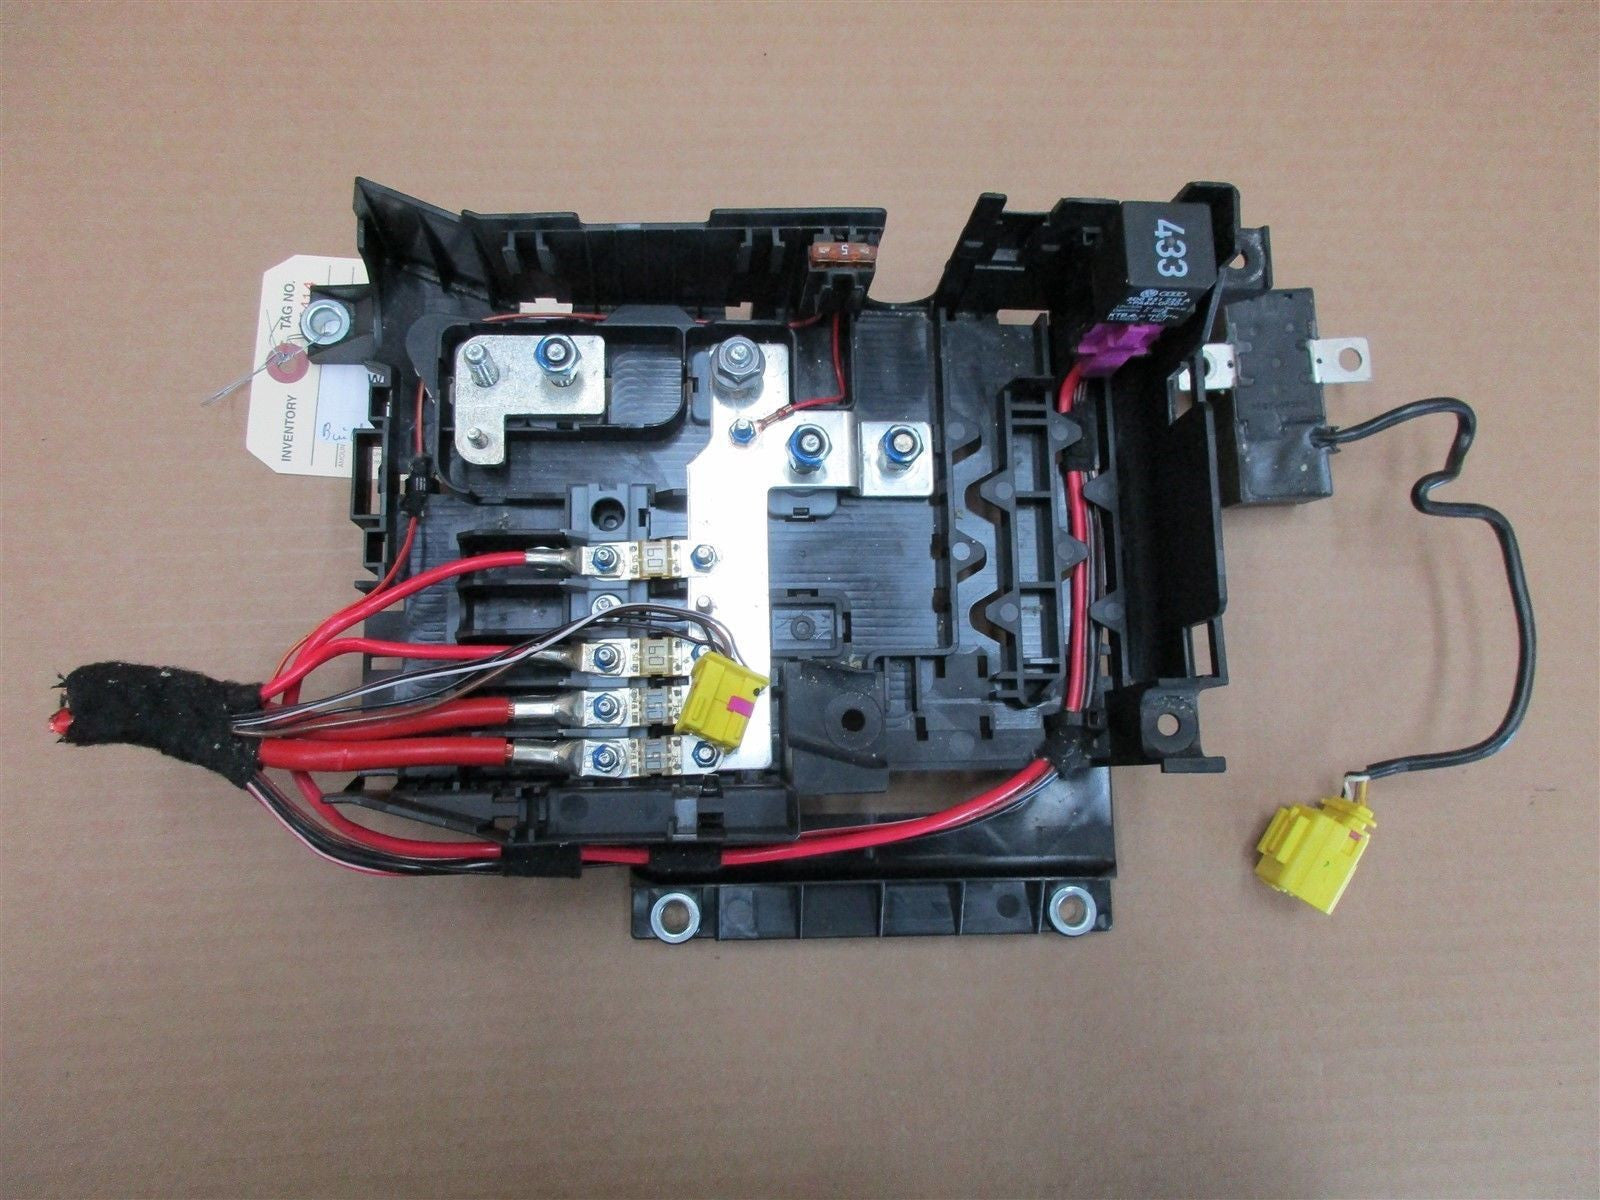 Instrument Cluster Wiring Diagram On Porsche Cayenne Wiring Diagram